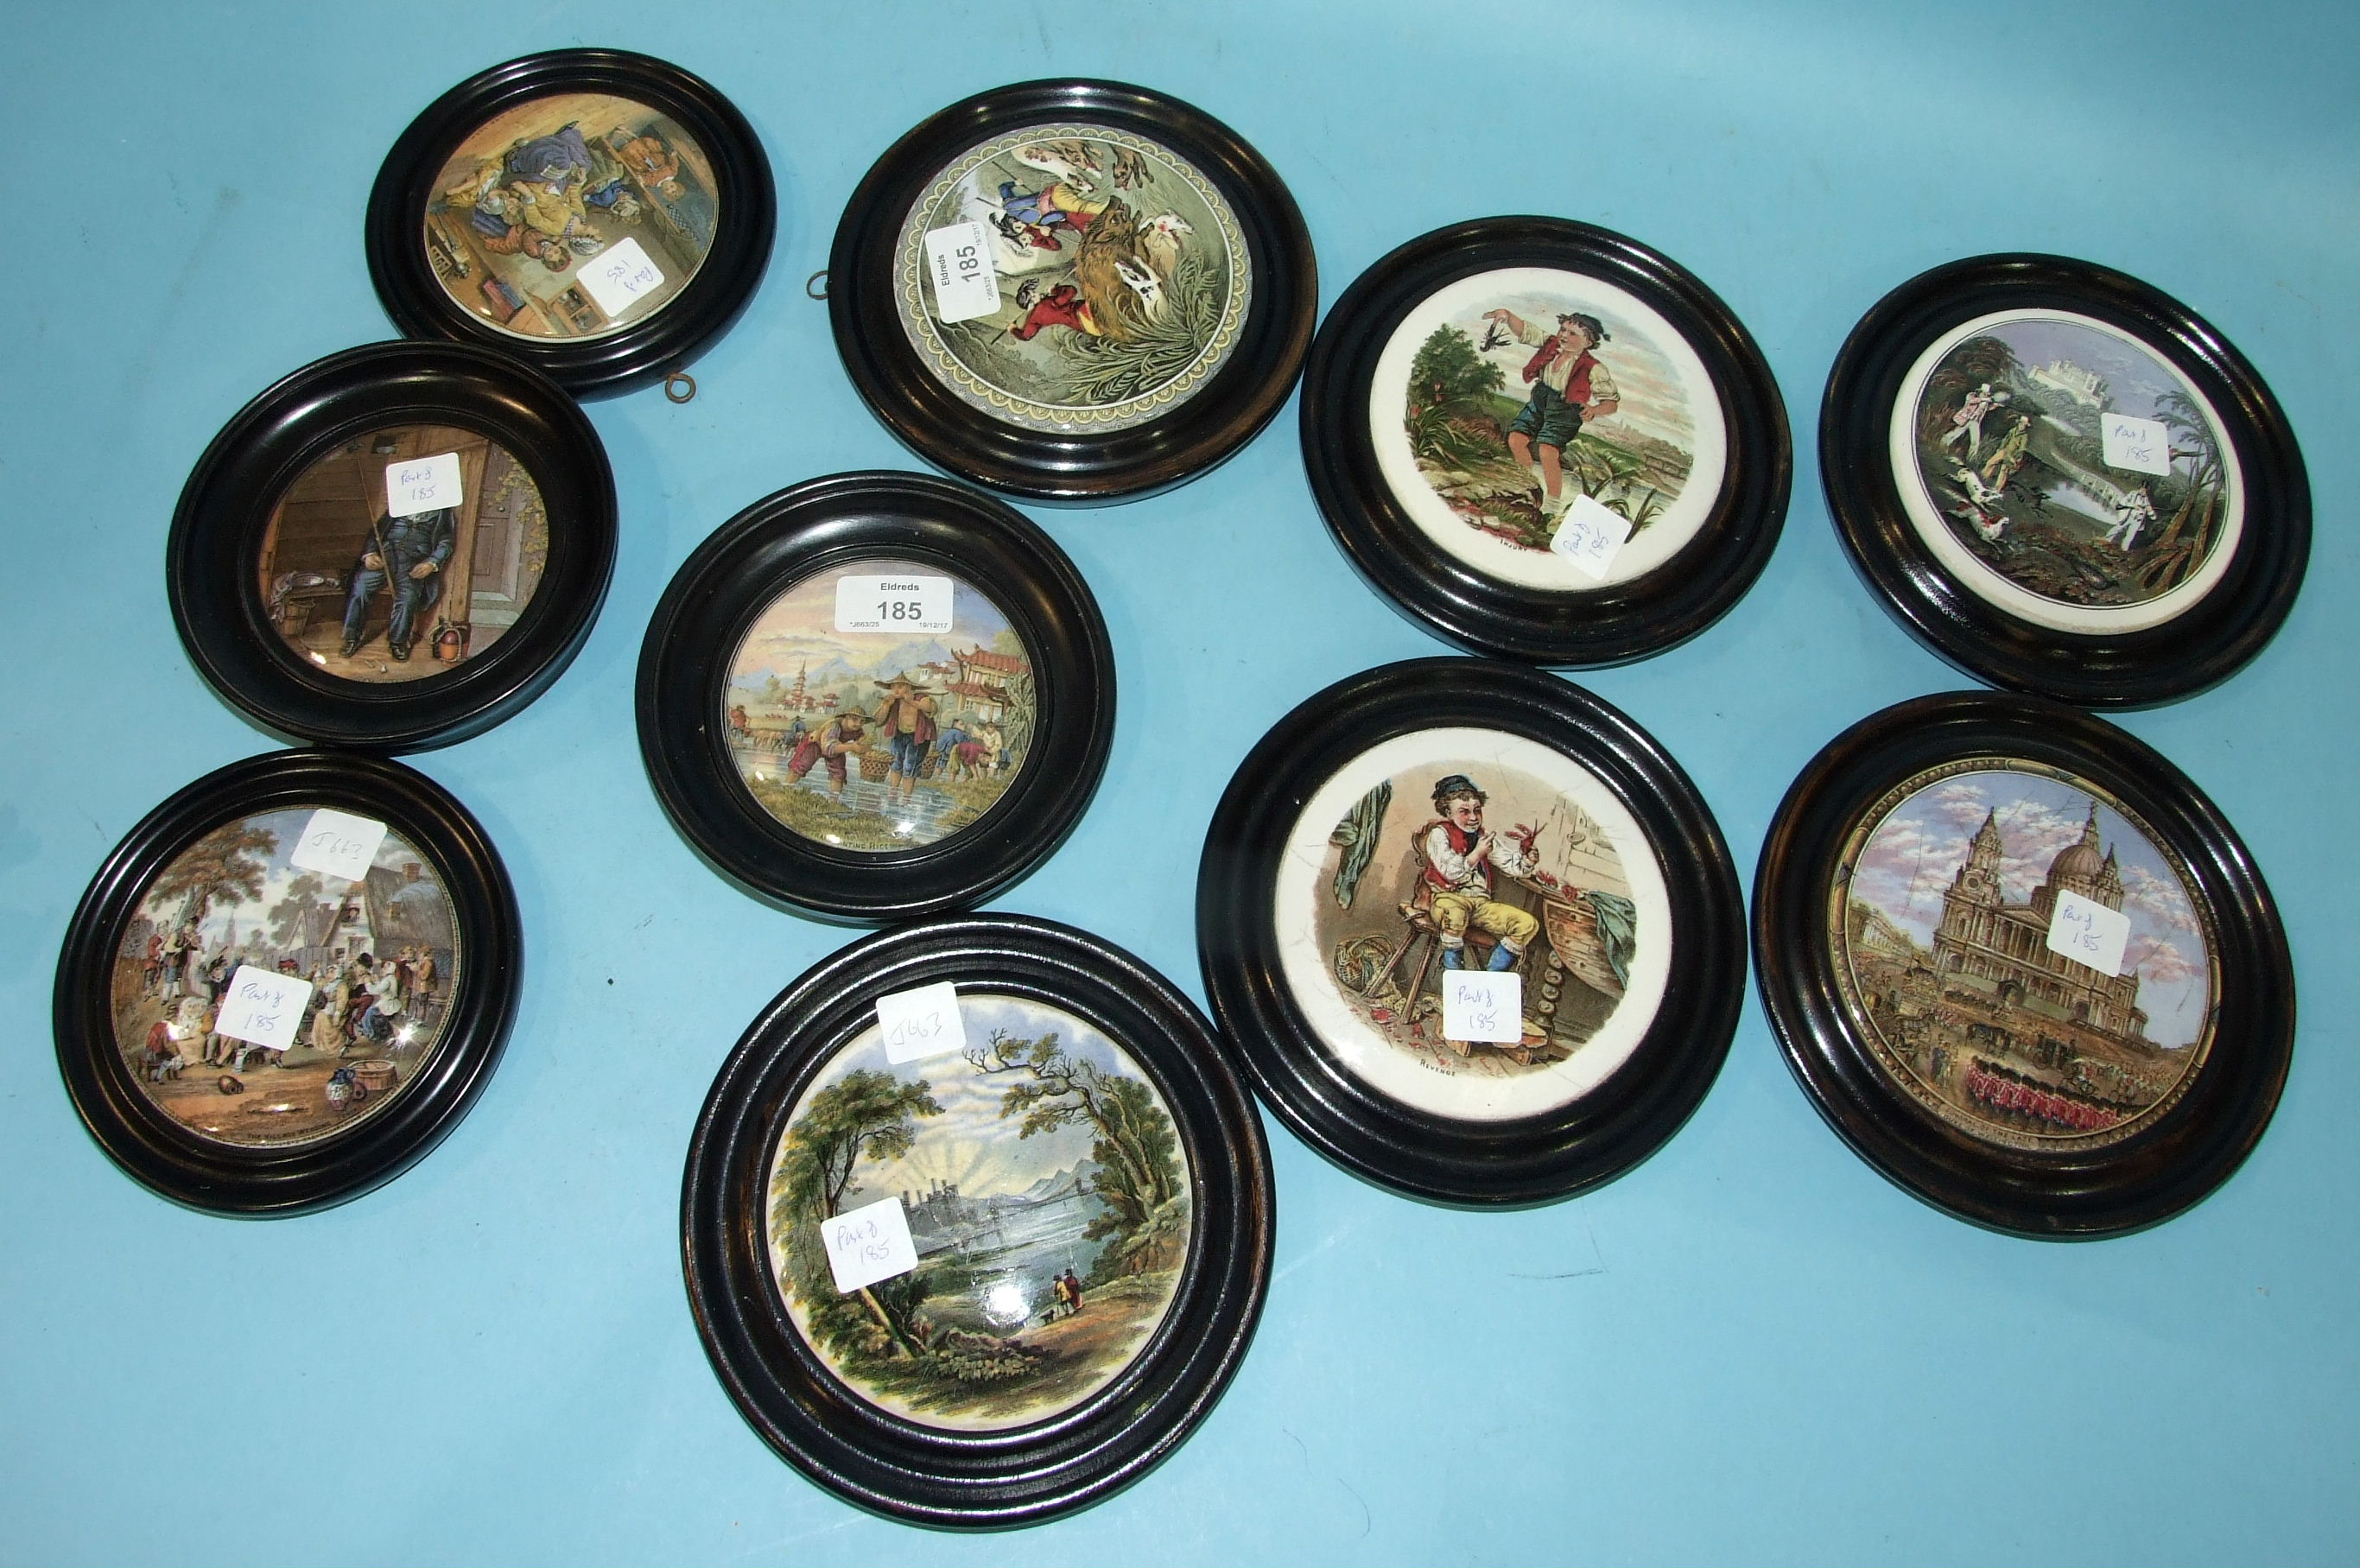 Lot 185 - A collection of ten Prattware pot lids, including 'Funeral of the Late Duke of Wellington' and '